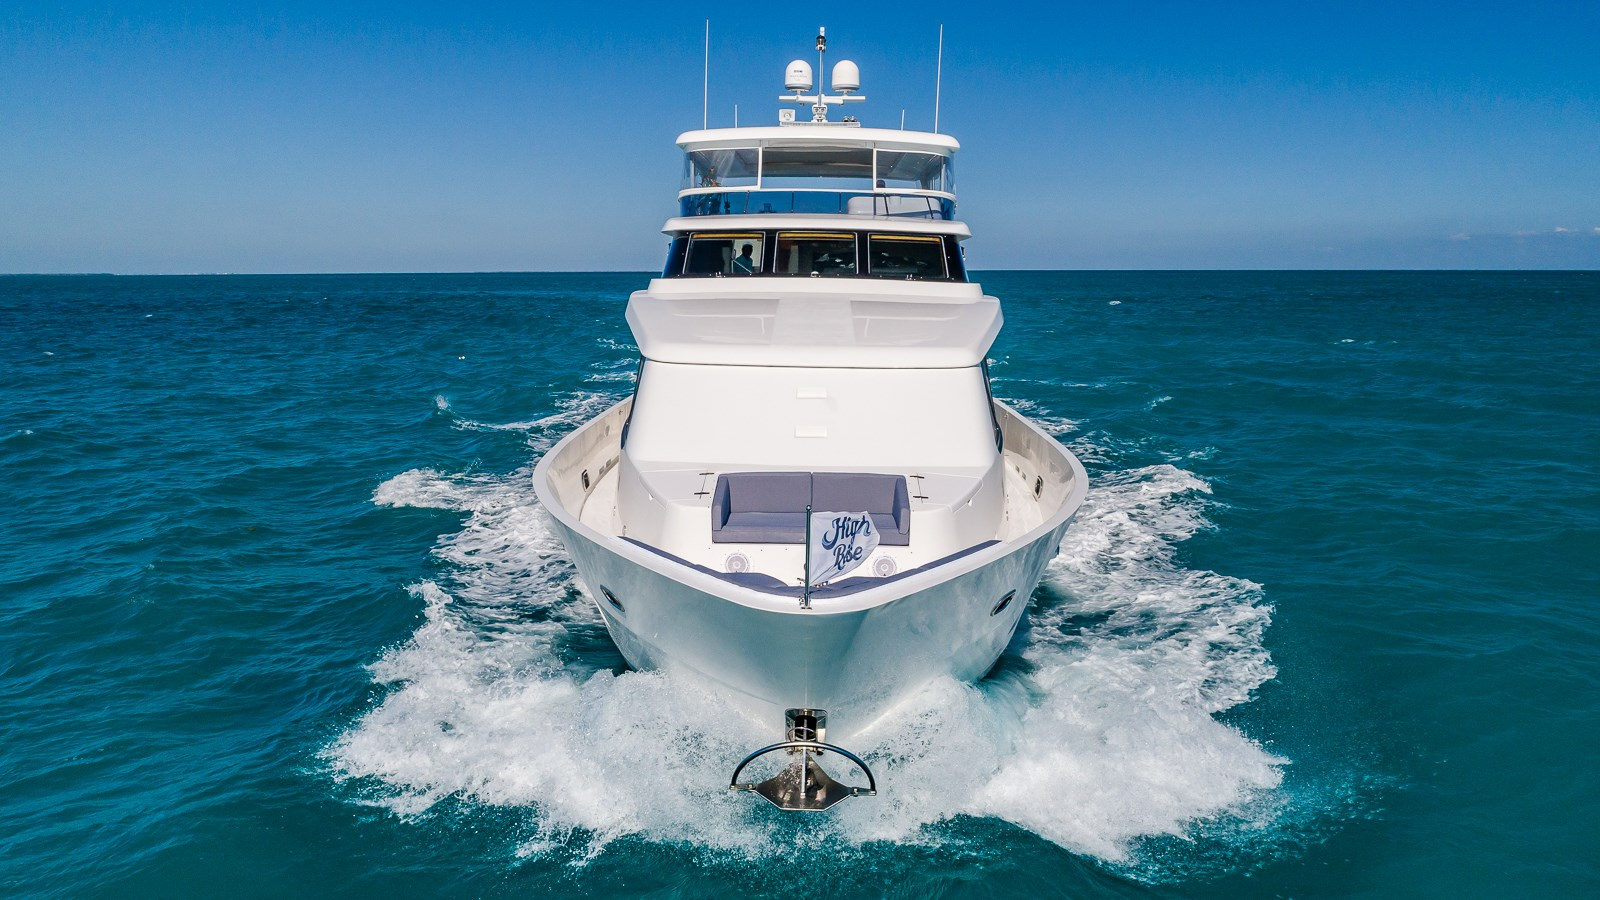 HIGH RISE yacht for sale